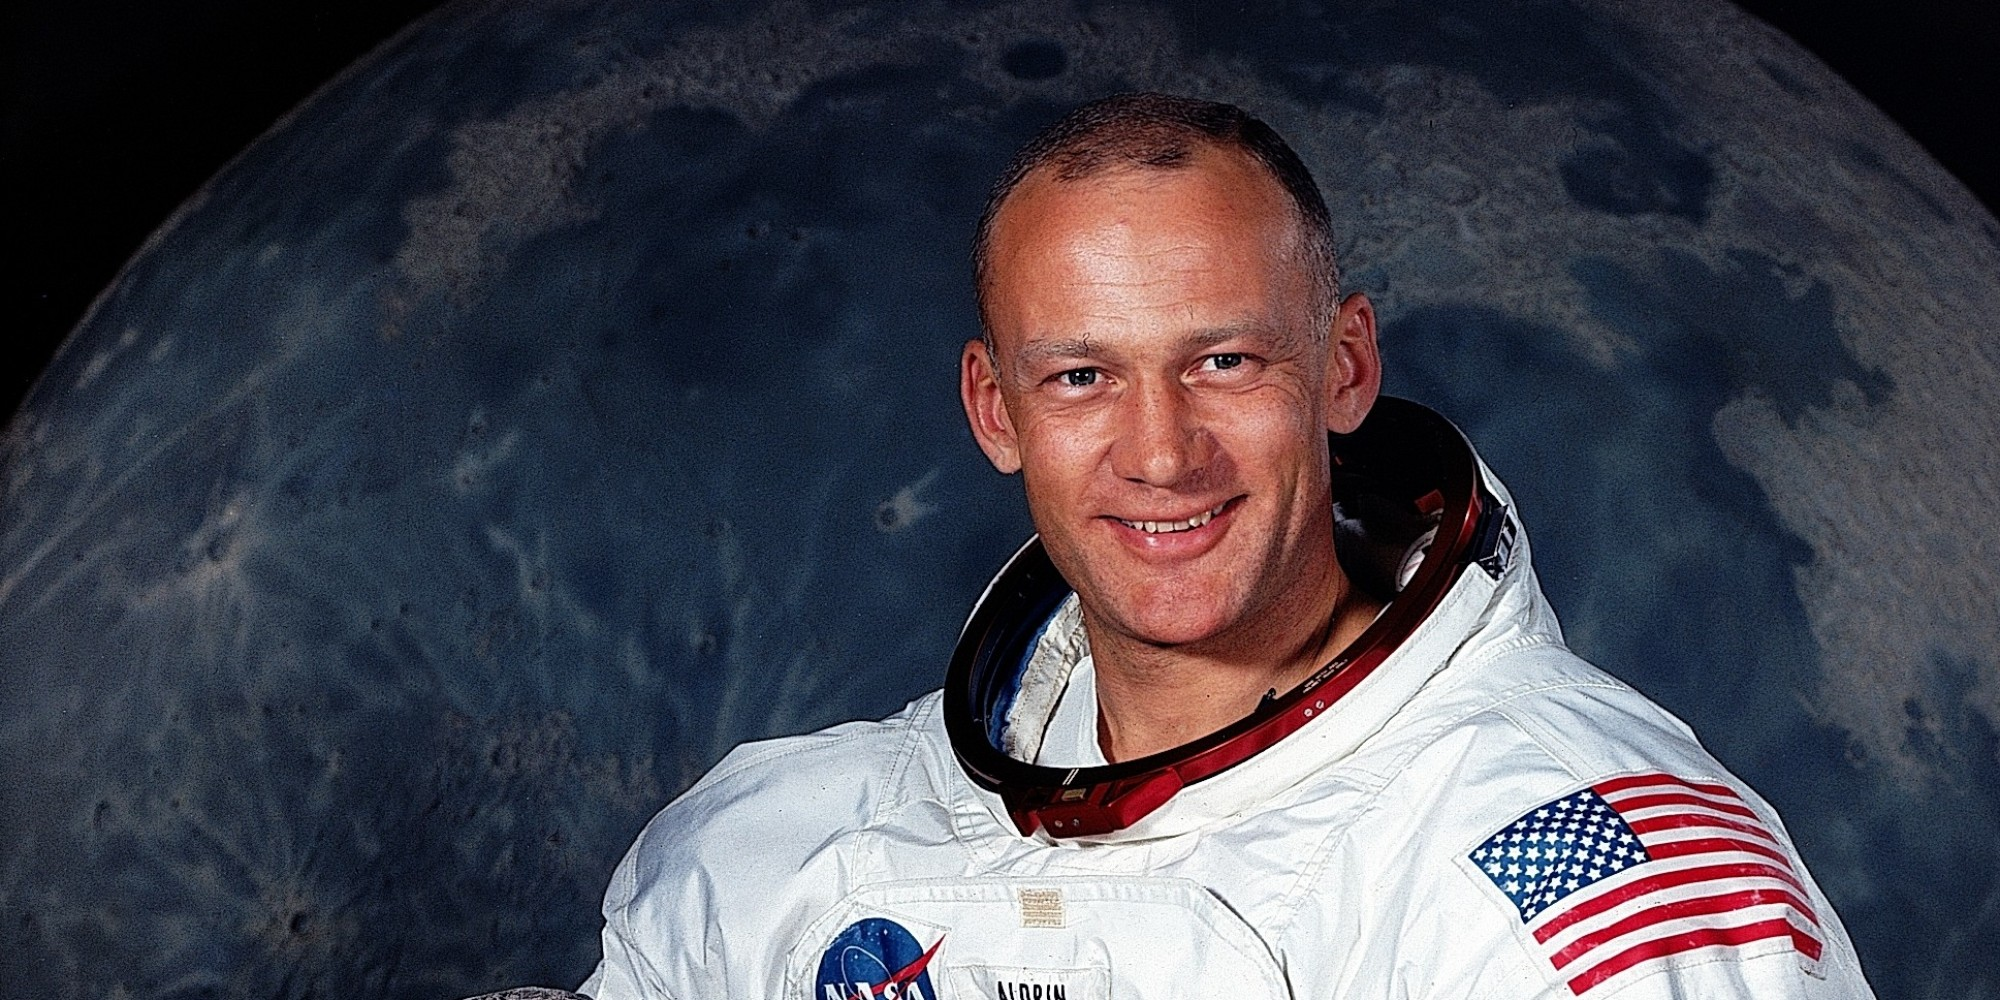 neil armstrong net worth - photo #3